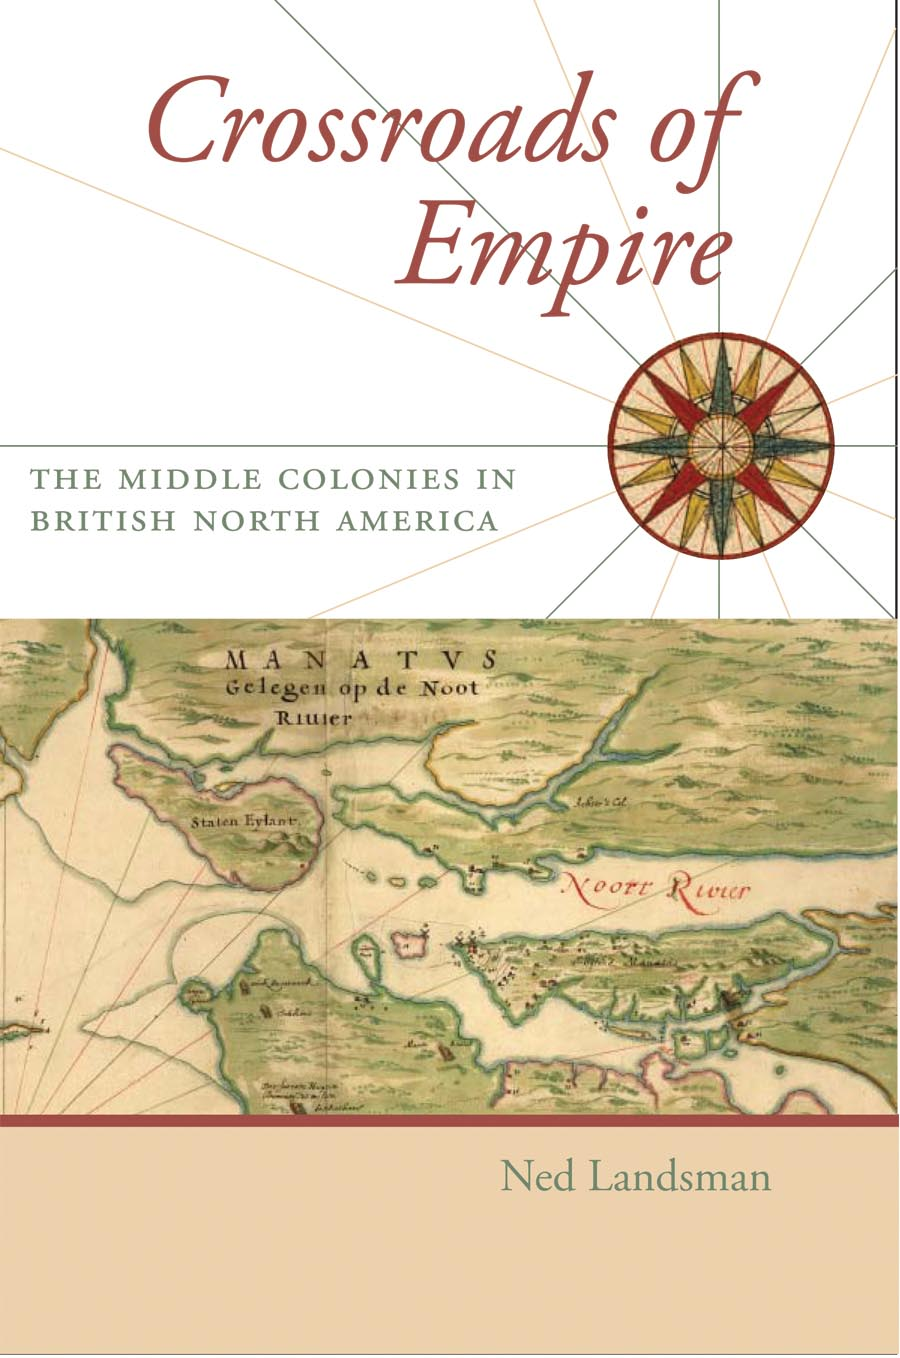 Crossroads of Empire – The Middle Colonies in British North America crossroads of empire – the middle colonies in british north america